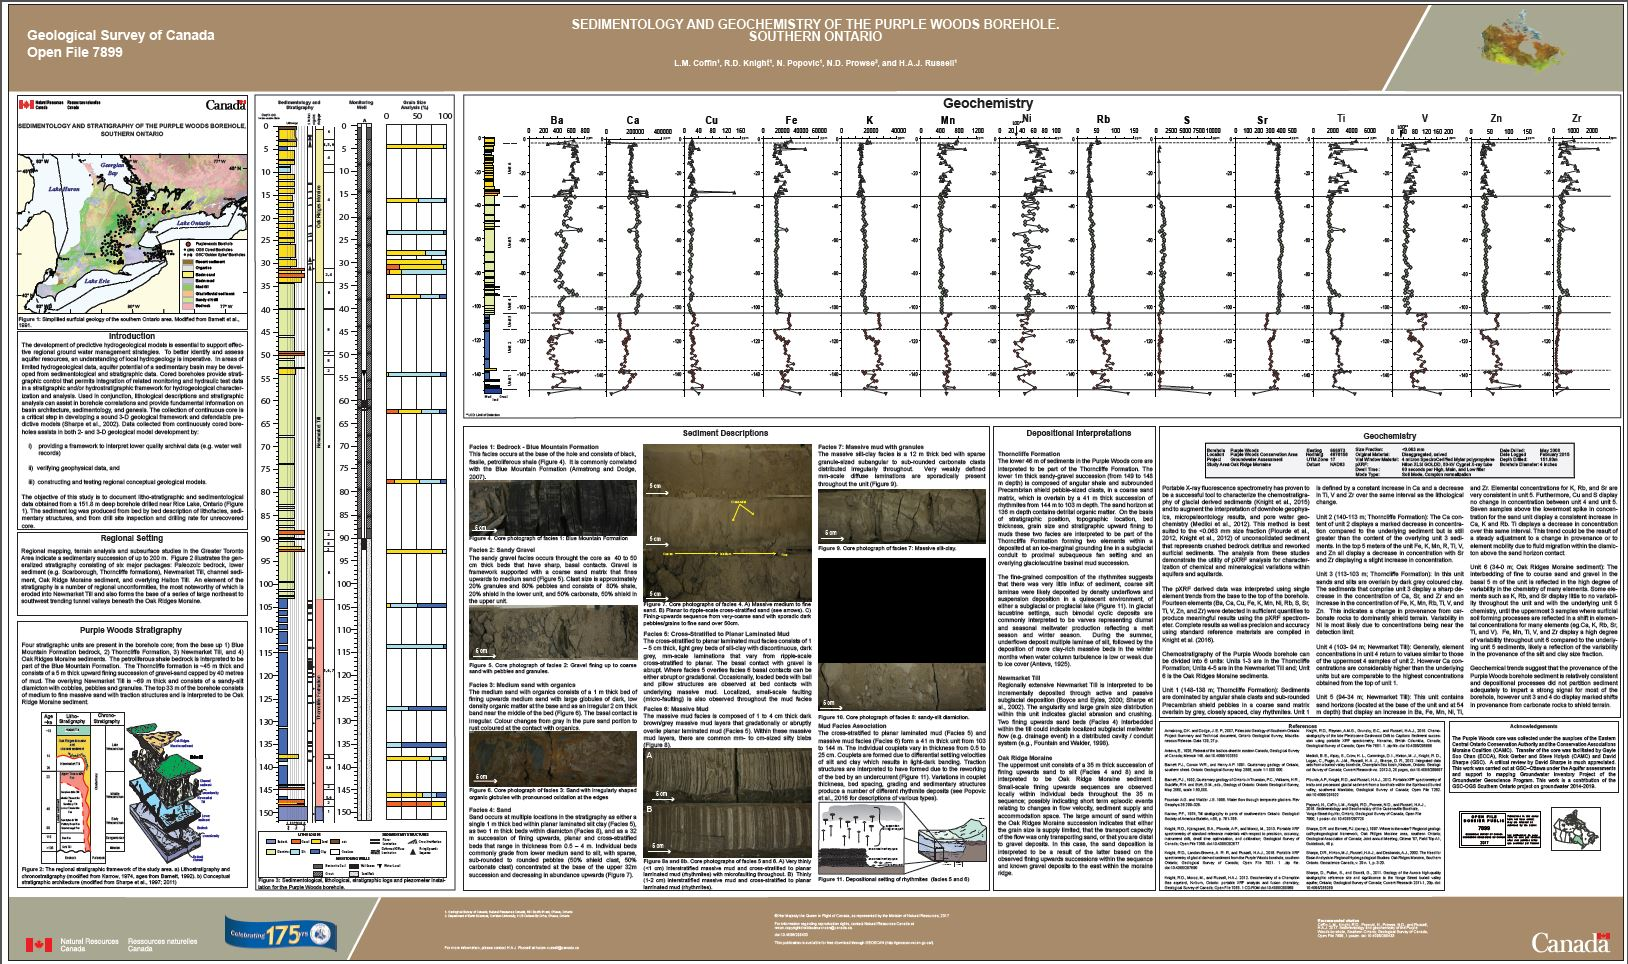 Sedimentology and geochemistry of the Purple Wood Borehole, southern Ontario